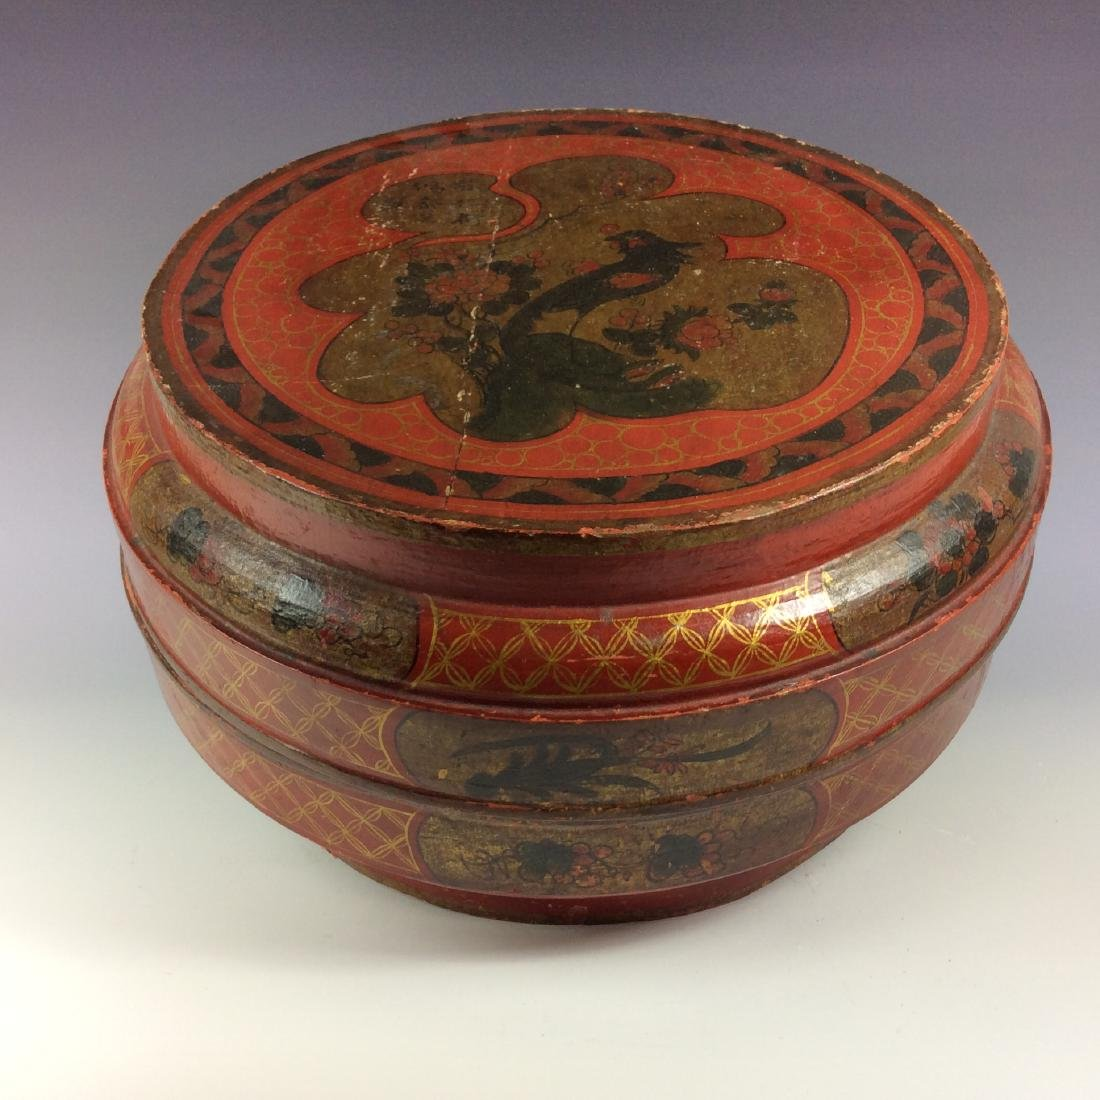 Vintage Chinese lacquer box with floral patterns